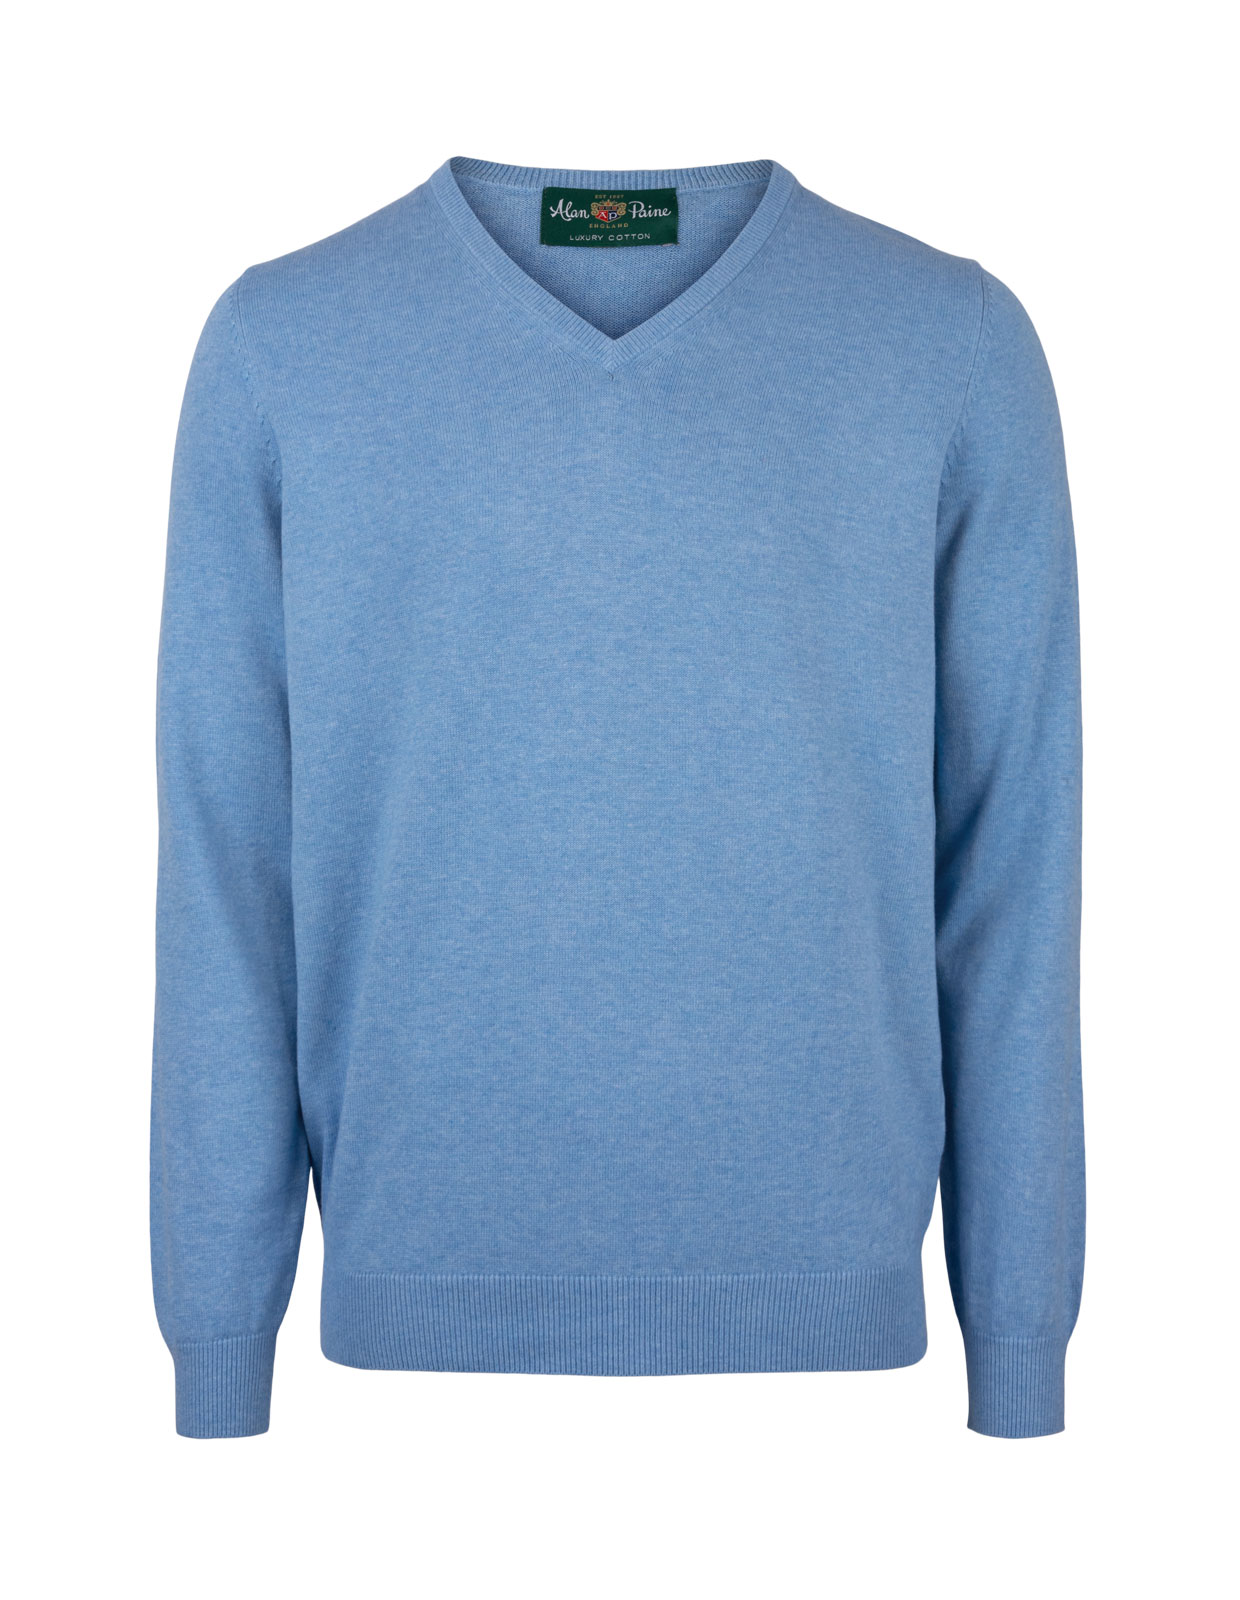 Rothwell Vee Neck Cotton Cashmere Carolina Blue